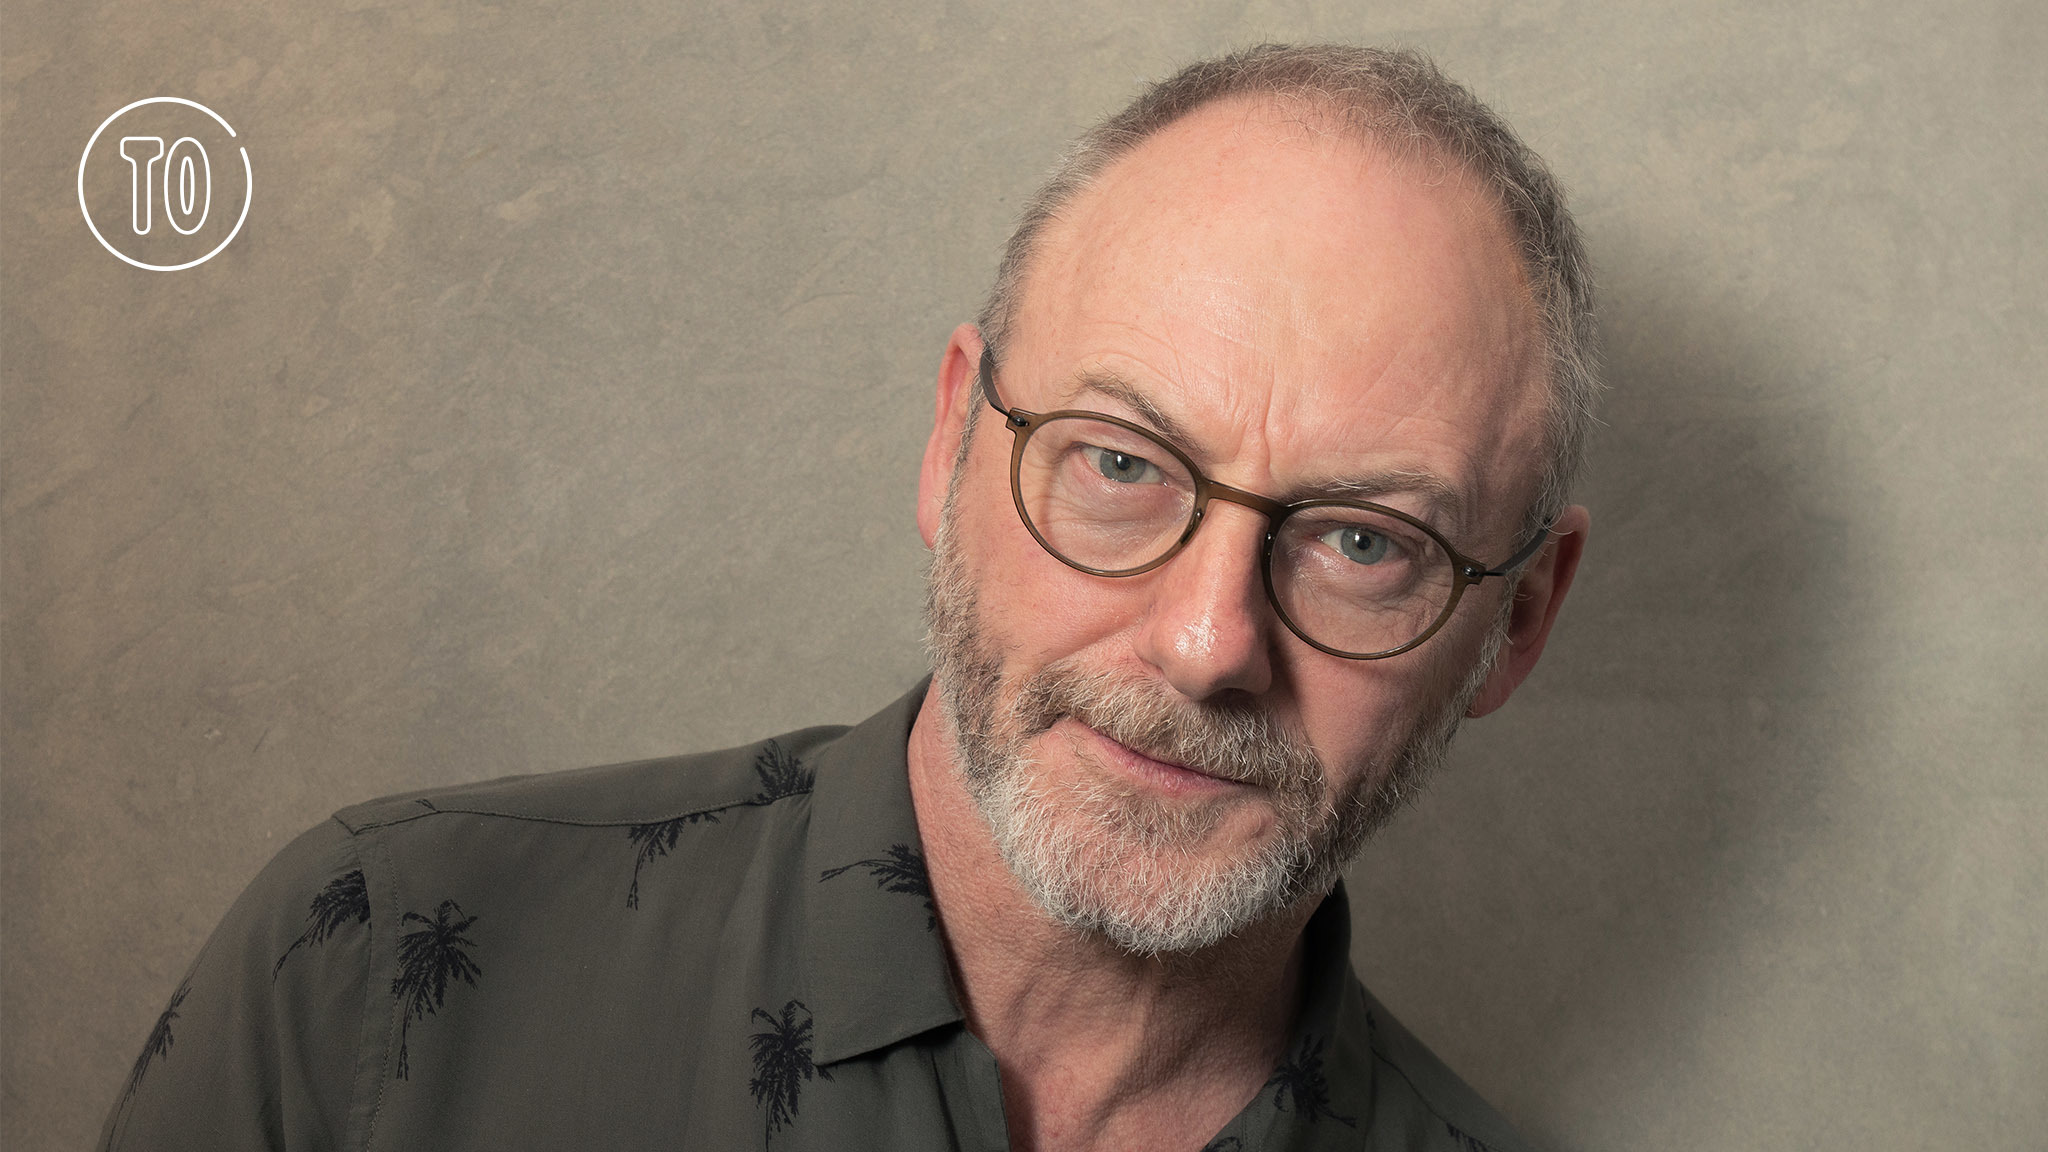 Time Out meets Liam Cunningham